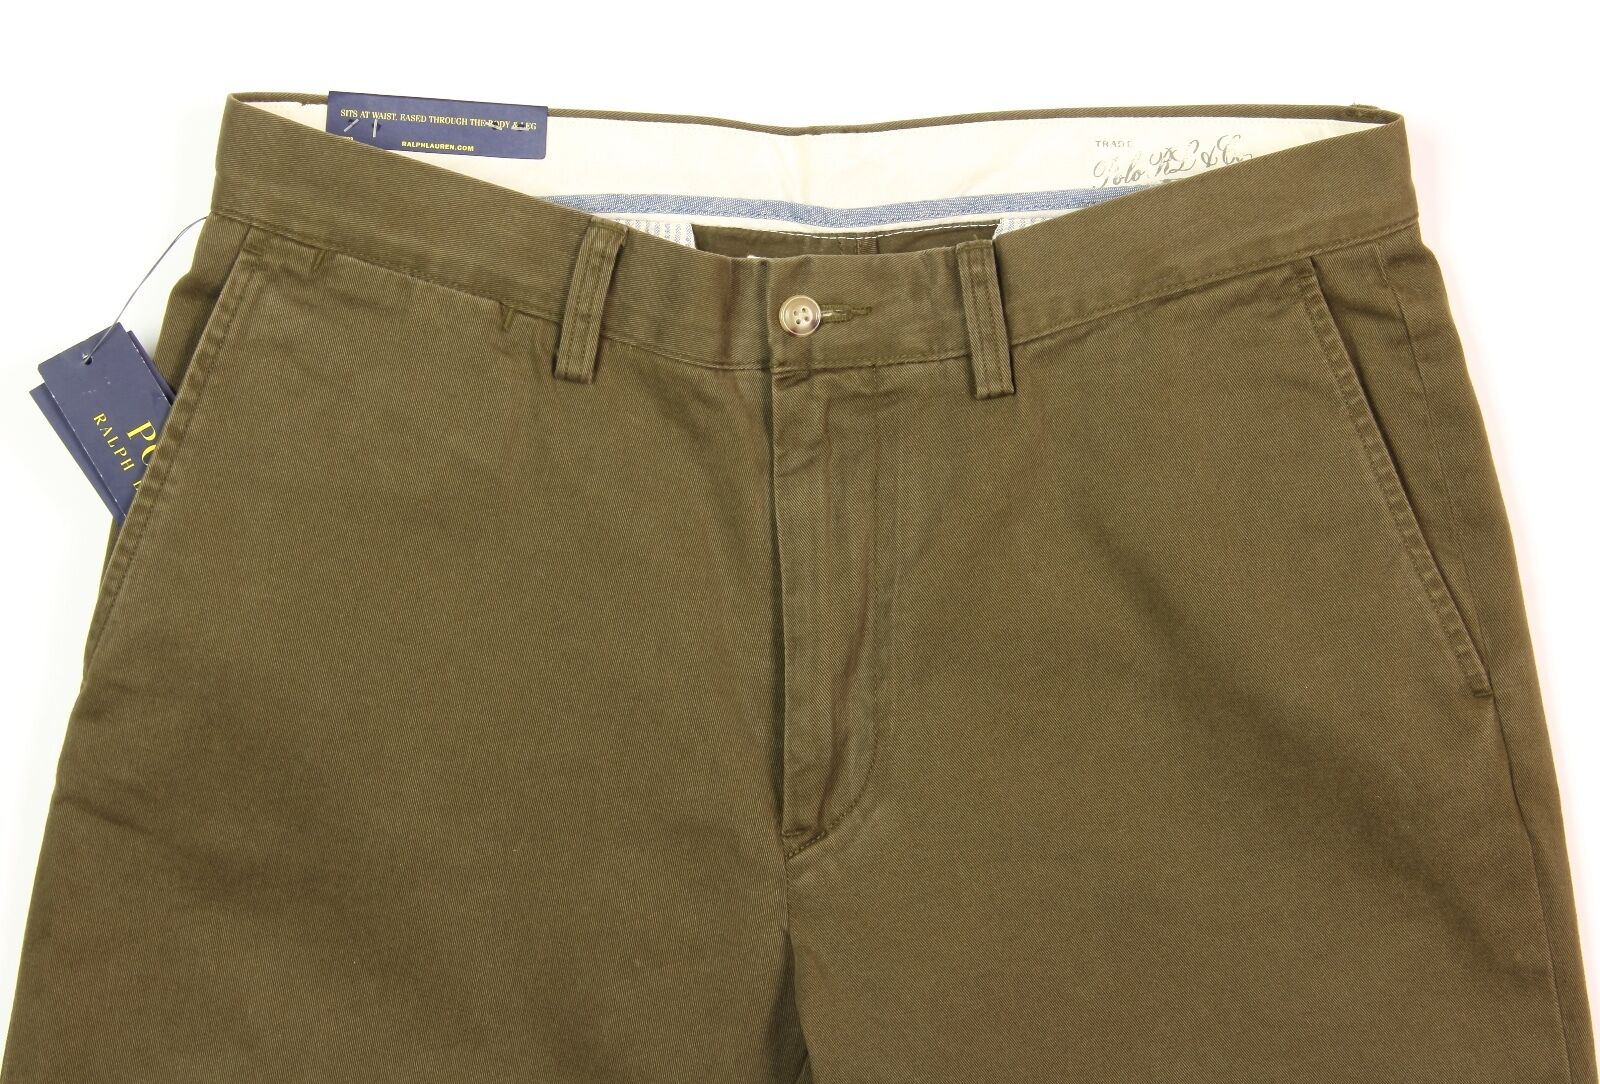 Men's POLO RALPH LAUREN Olive Green Cotton Pants 30x30 NEW NWT Classic Fit Nice